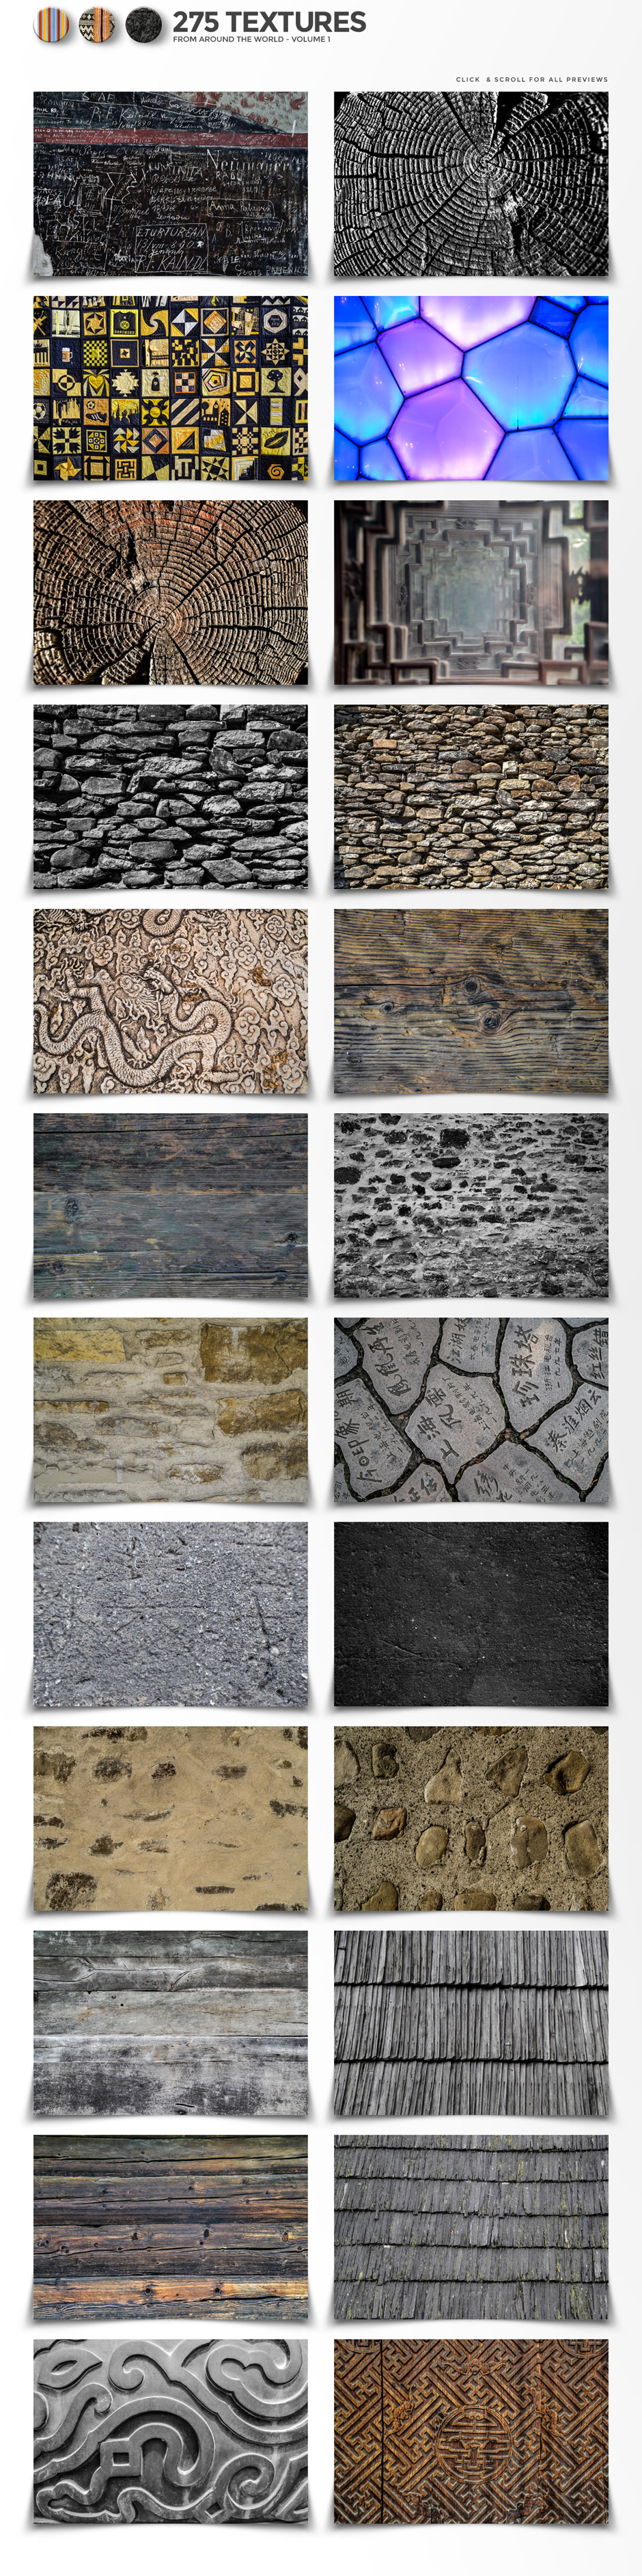 275 World Textures From Around The Globe